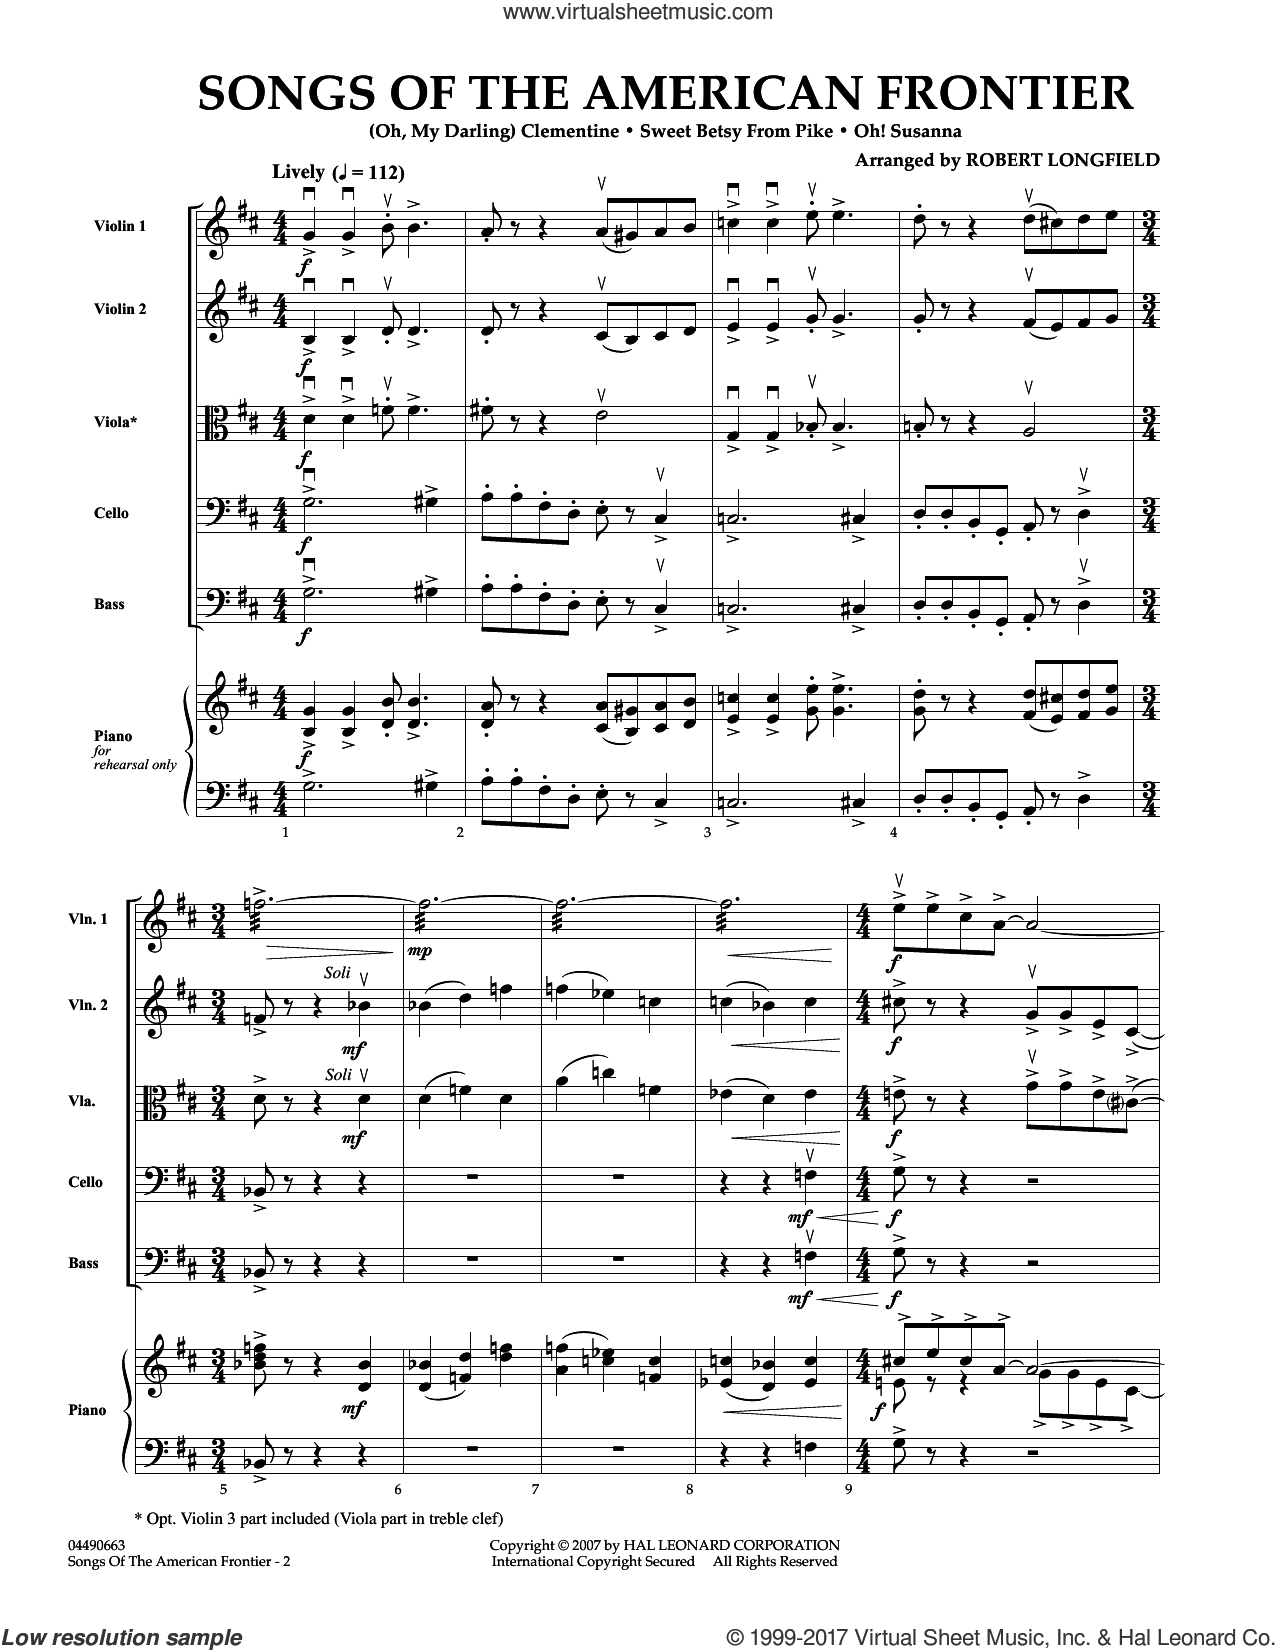 Songs Of The American Frontier (COMPLETE) sheet music for orchestra by Robert Longfield, intermediate skill level